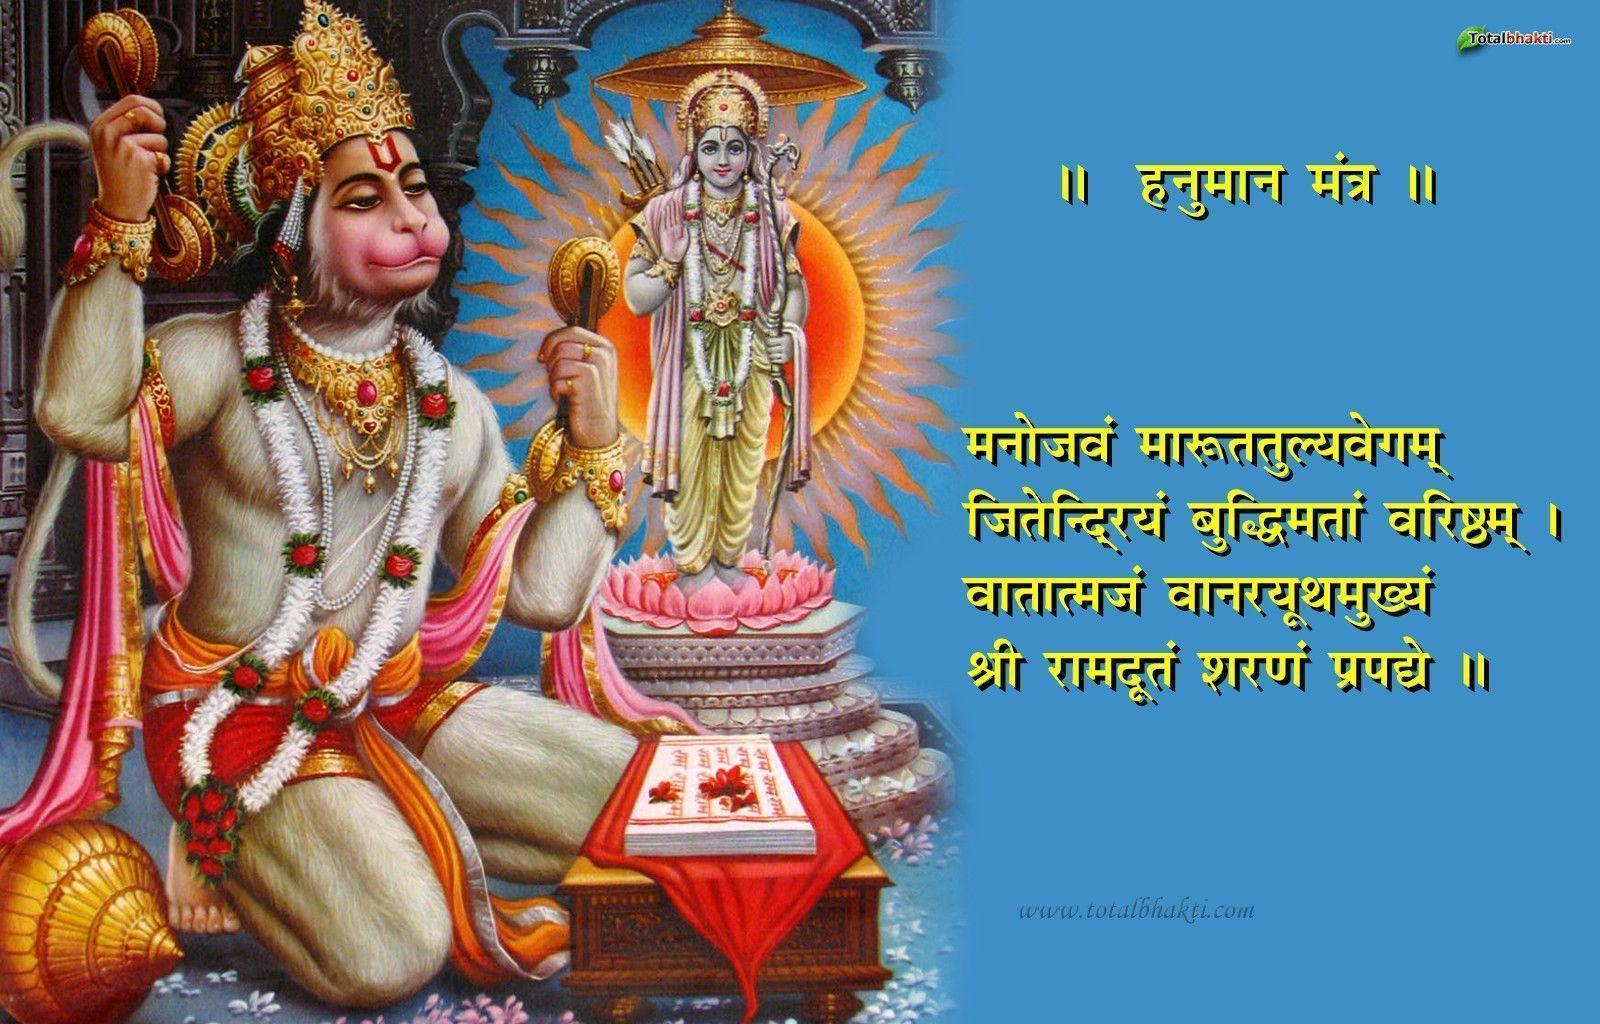 hanuman wallpaper, Hindu wallpaper, Hanuman